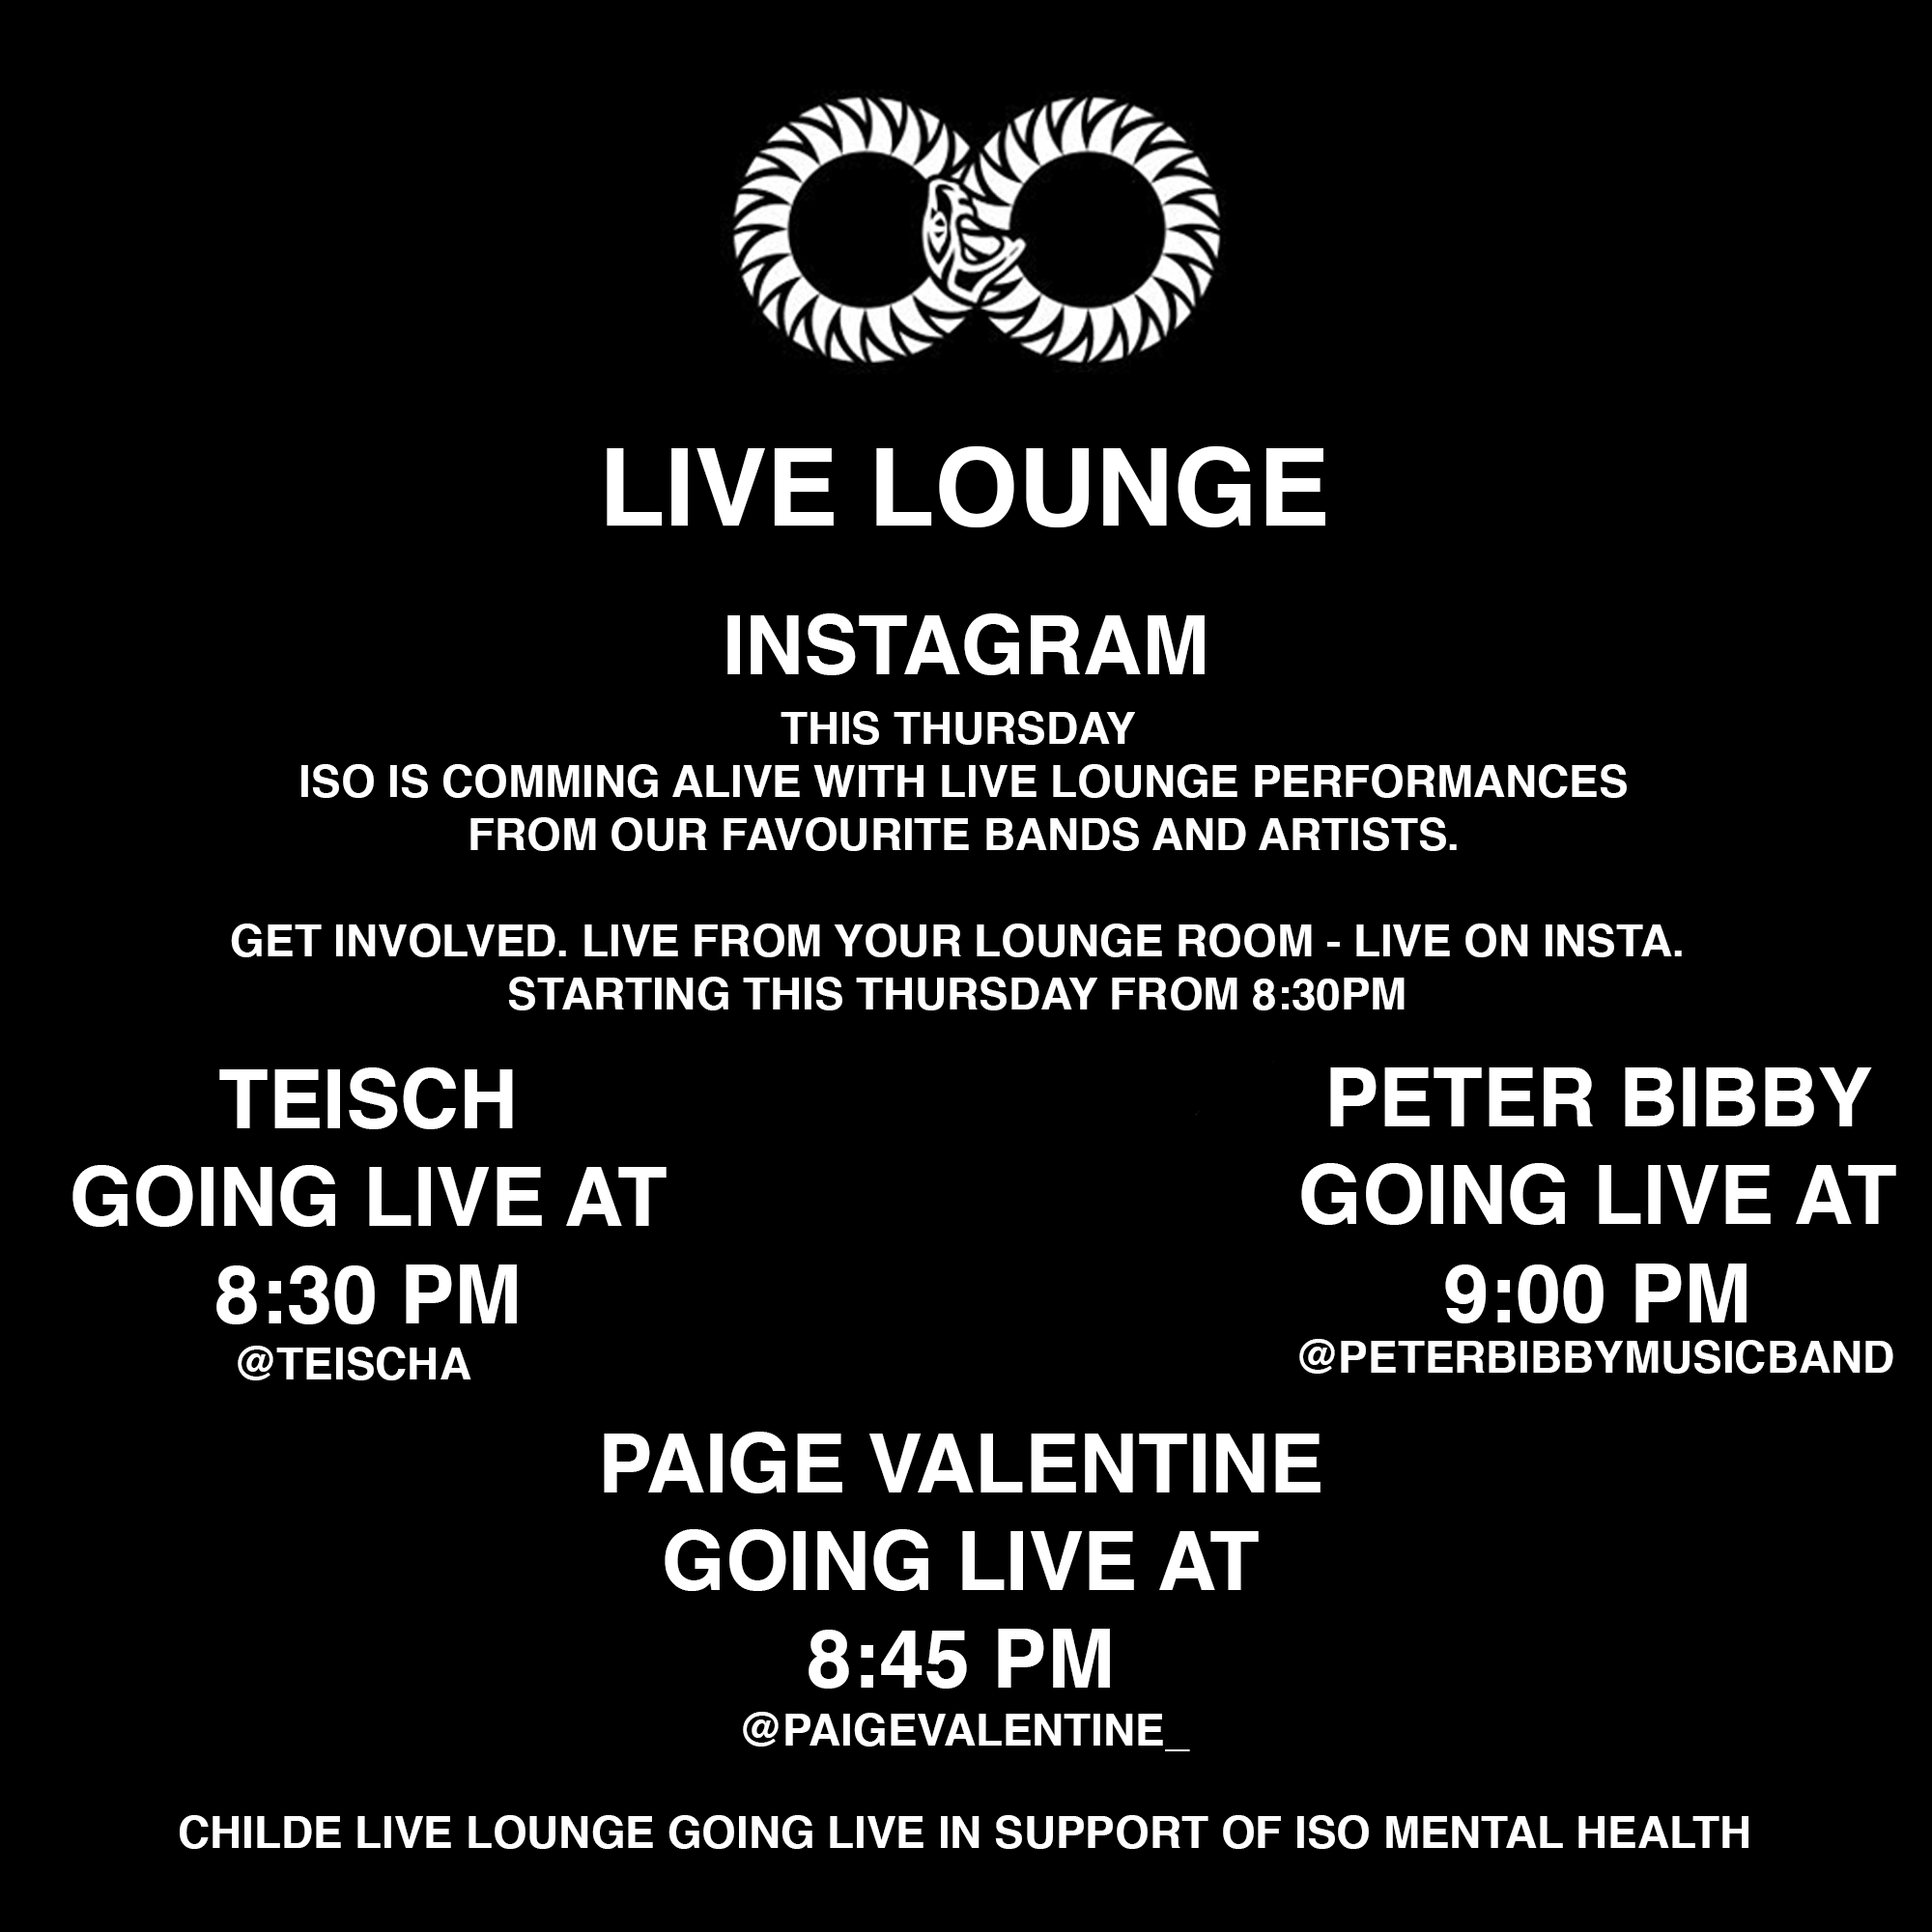 Childe Live Lounge in support of positive mental health